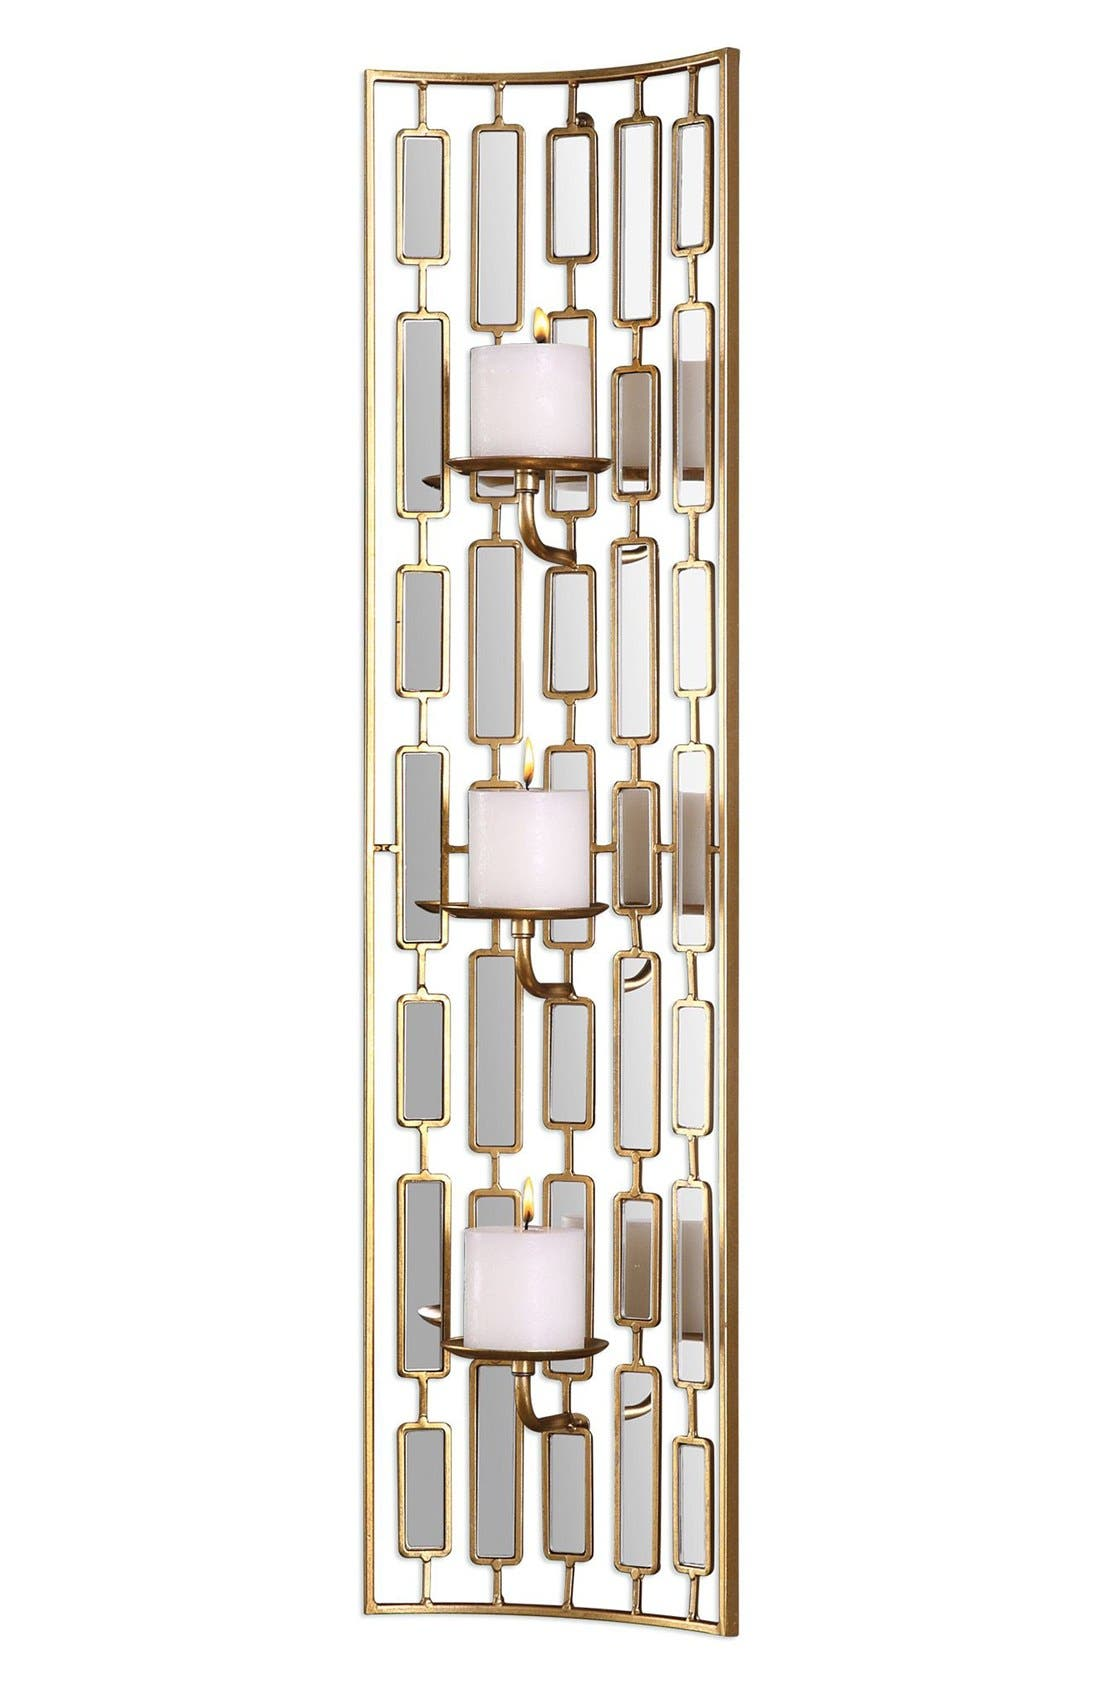 Alternate Image 1 Selected - Uttermost Mirrored Candleholder Wall Sconce